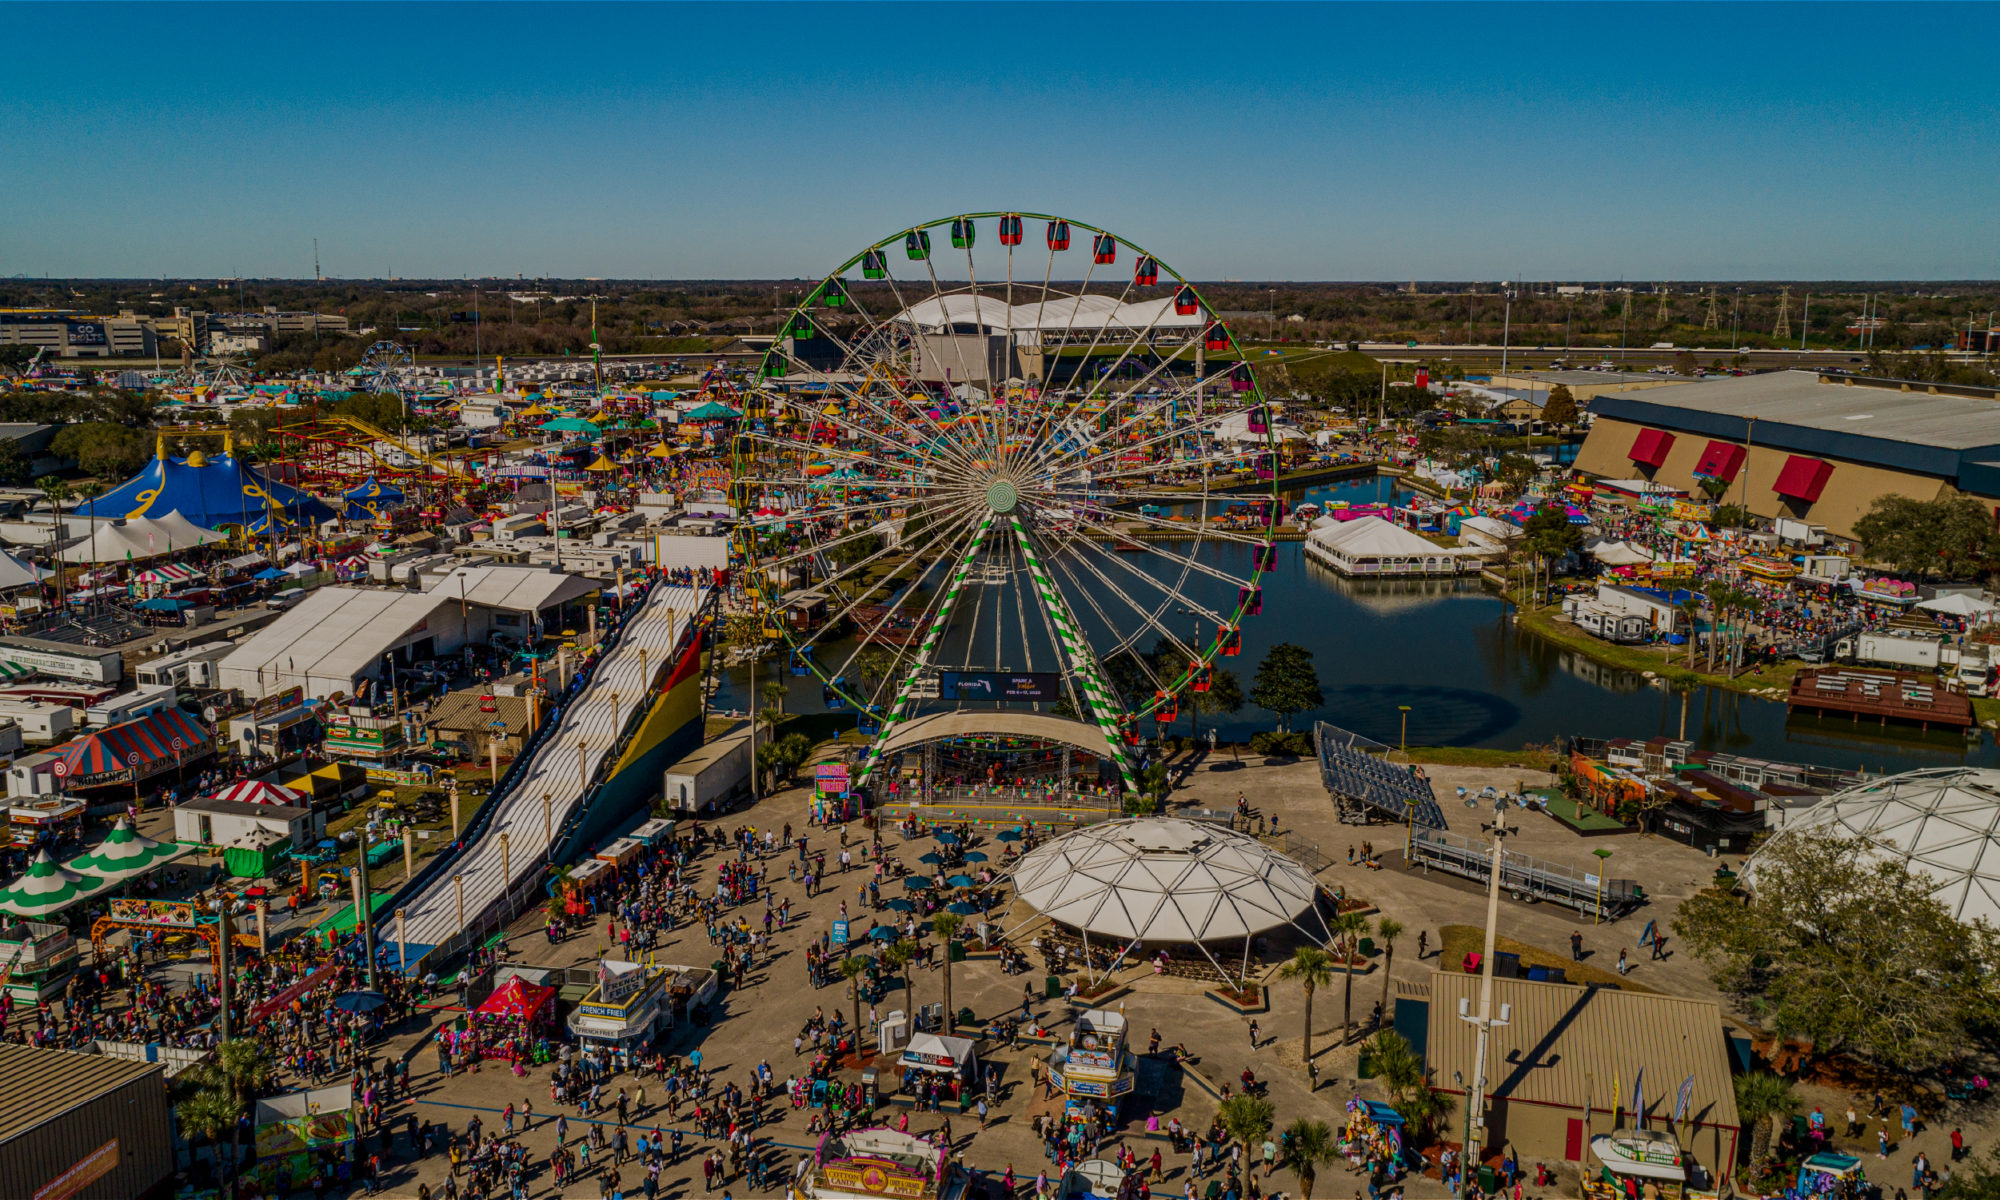 Florida State Fairgrounds: Find Your Fun In The Sun! For Florida State Fairgrounds Events Calendar